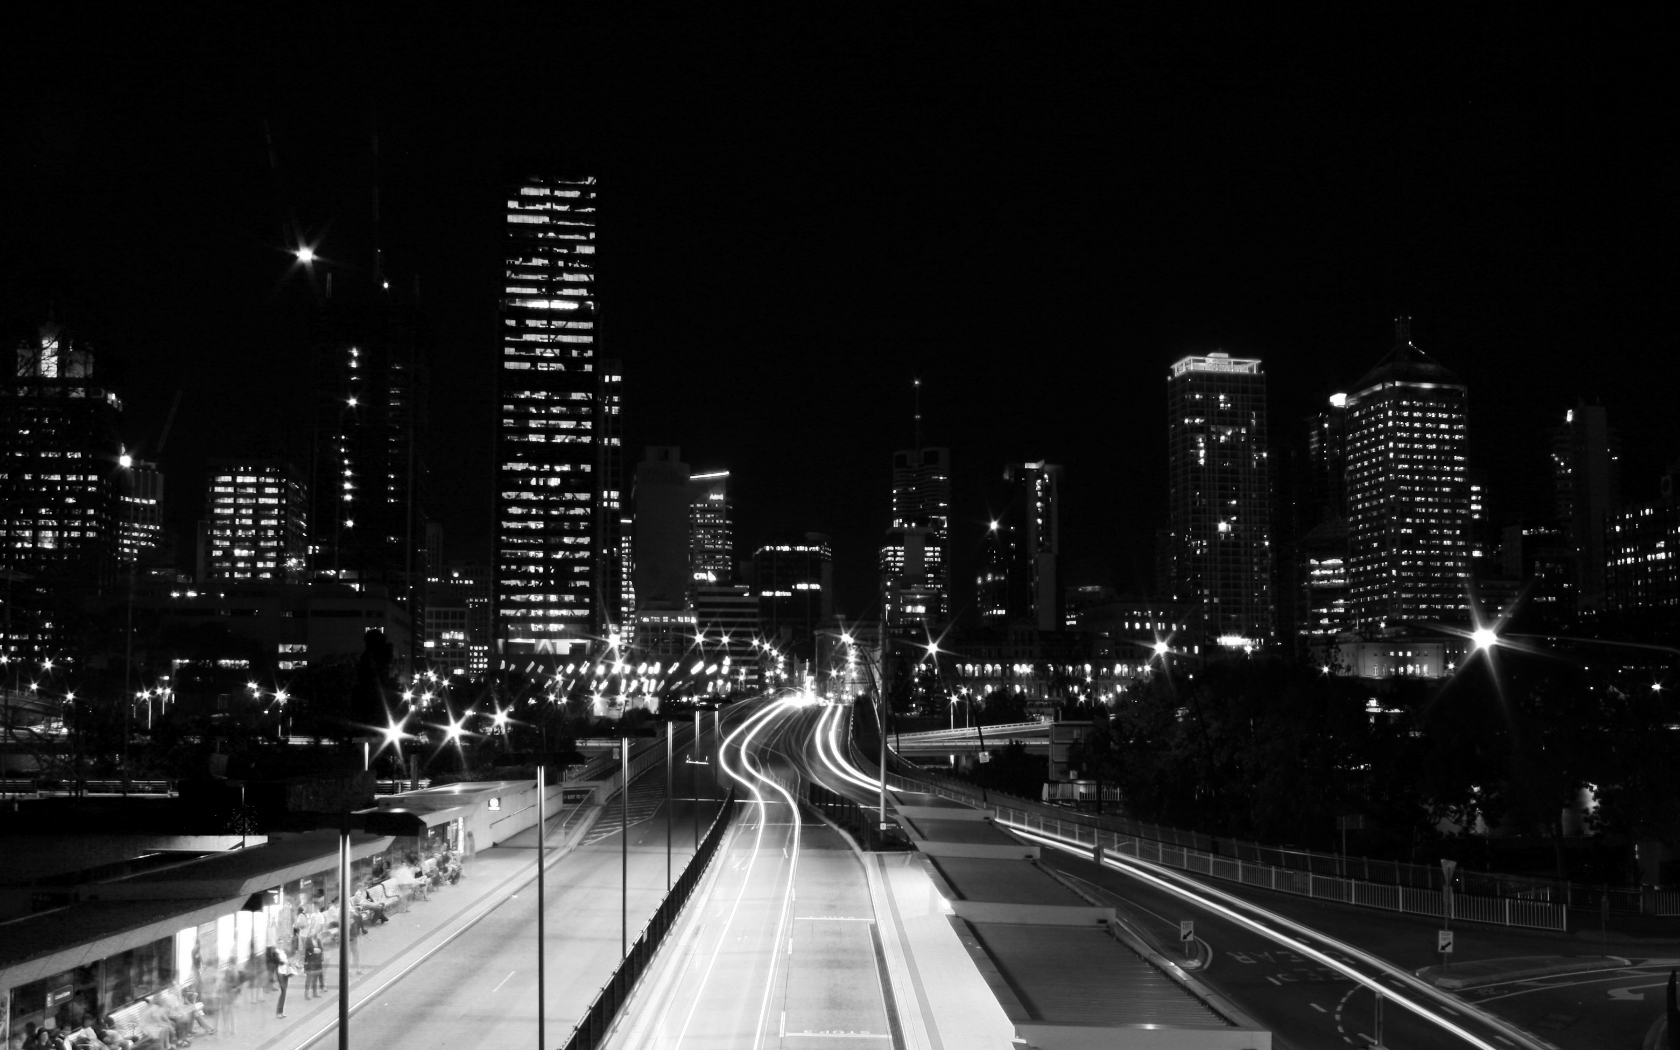 Black And White City Photography Wallpaper Wallpaper with 1680x1050 1680x1050